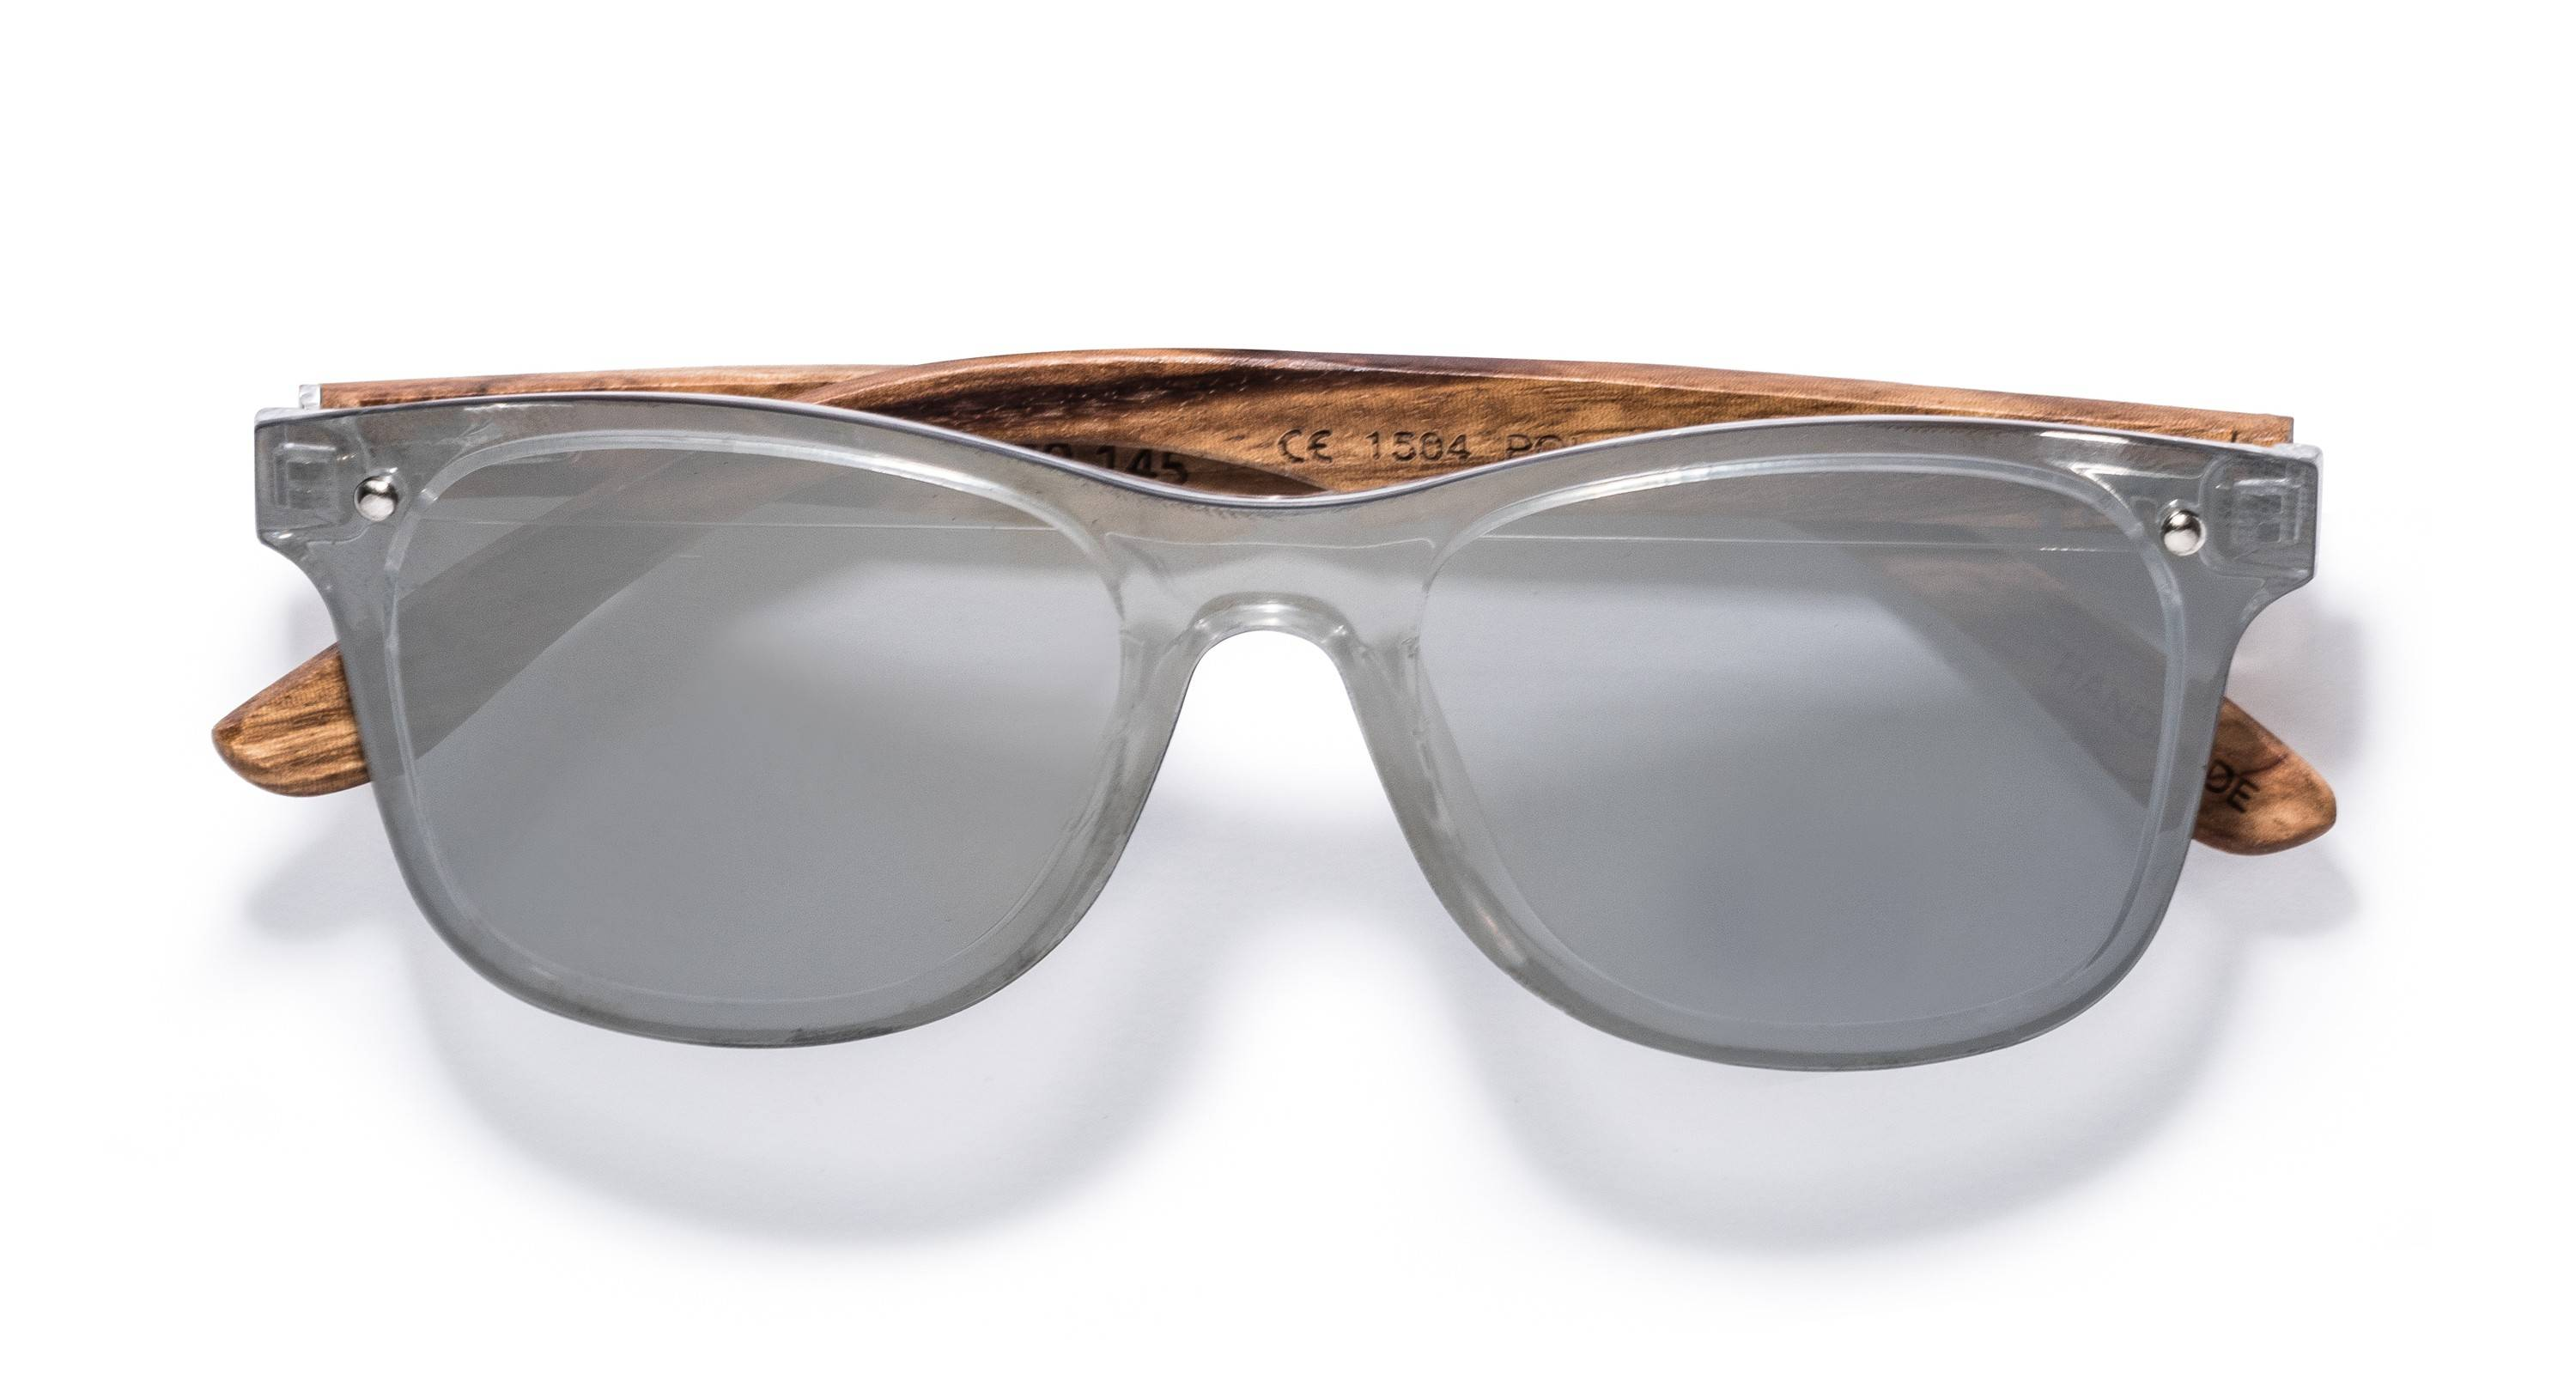 Kraywoods Rover, reflective Sunglasses made from Zebra wood with polarized mirrored lenses